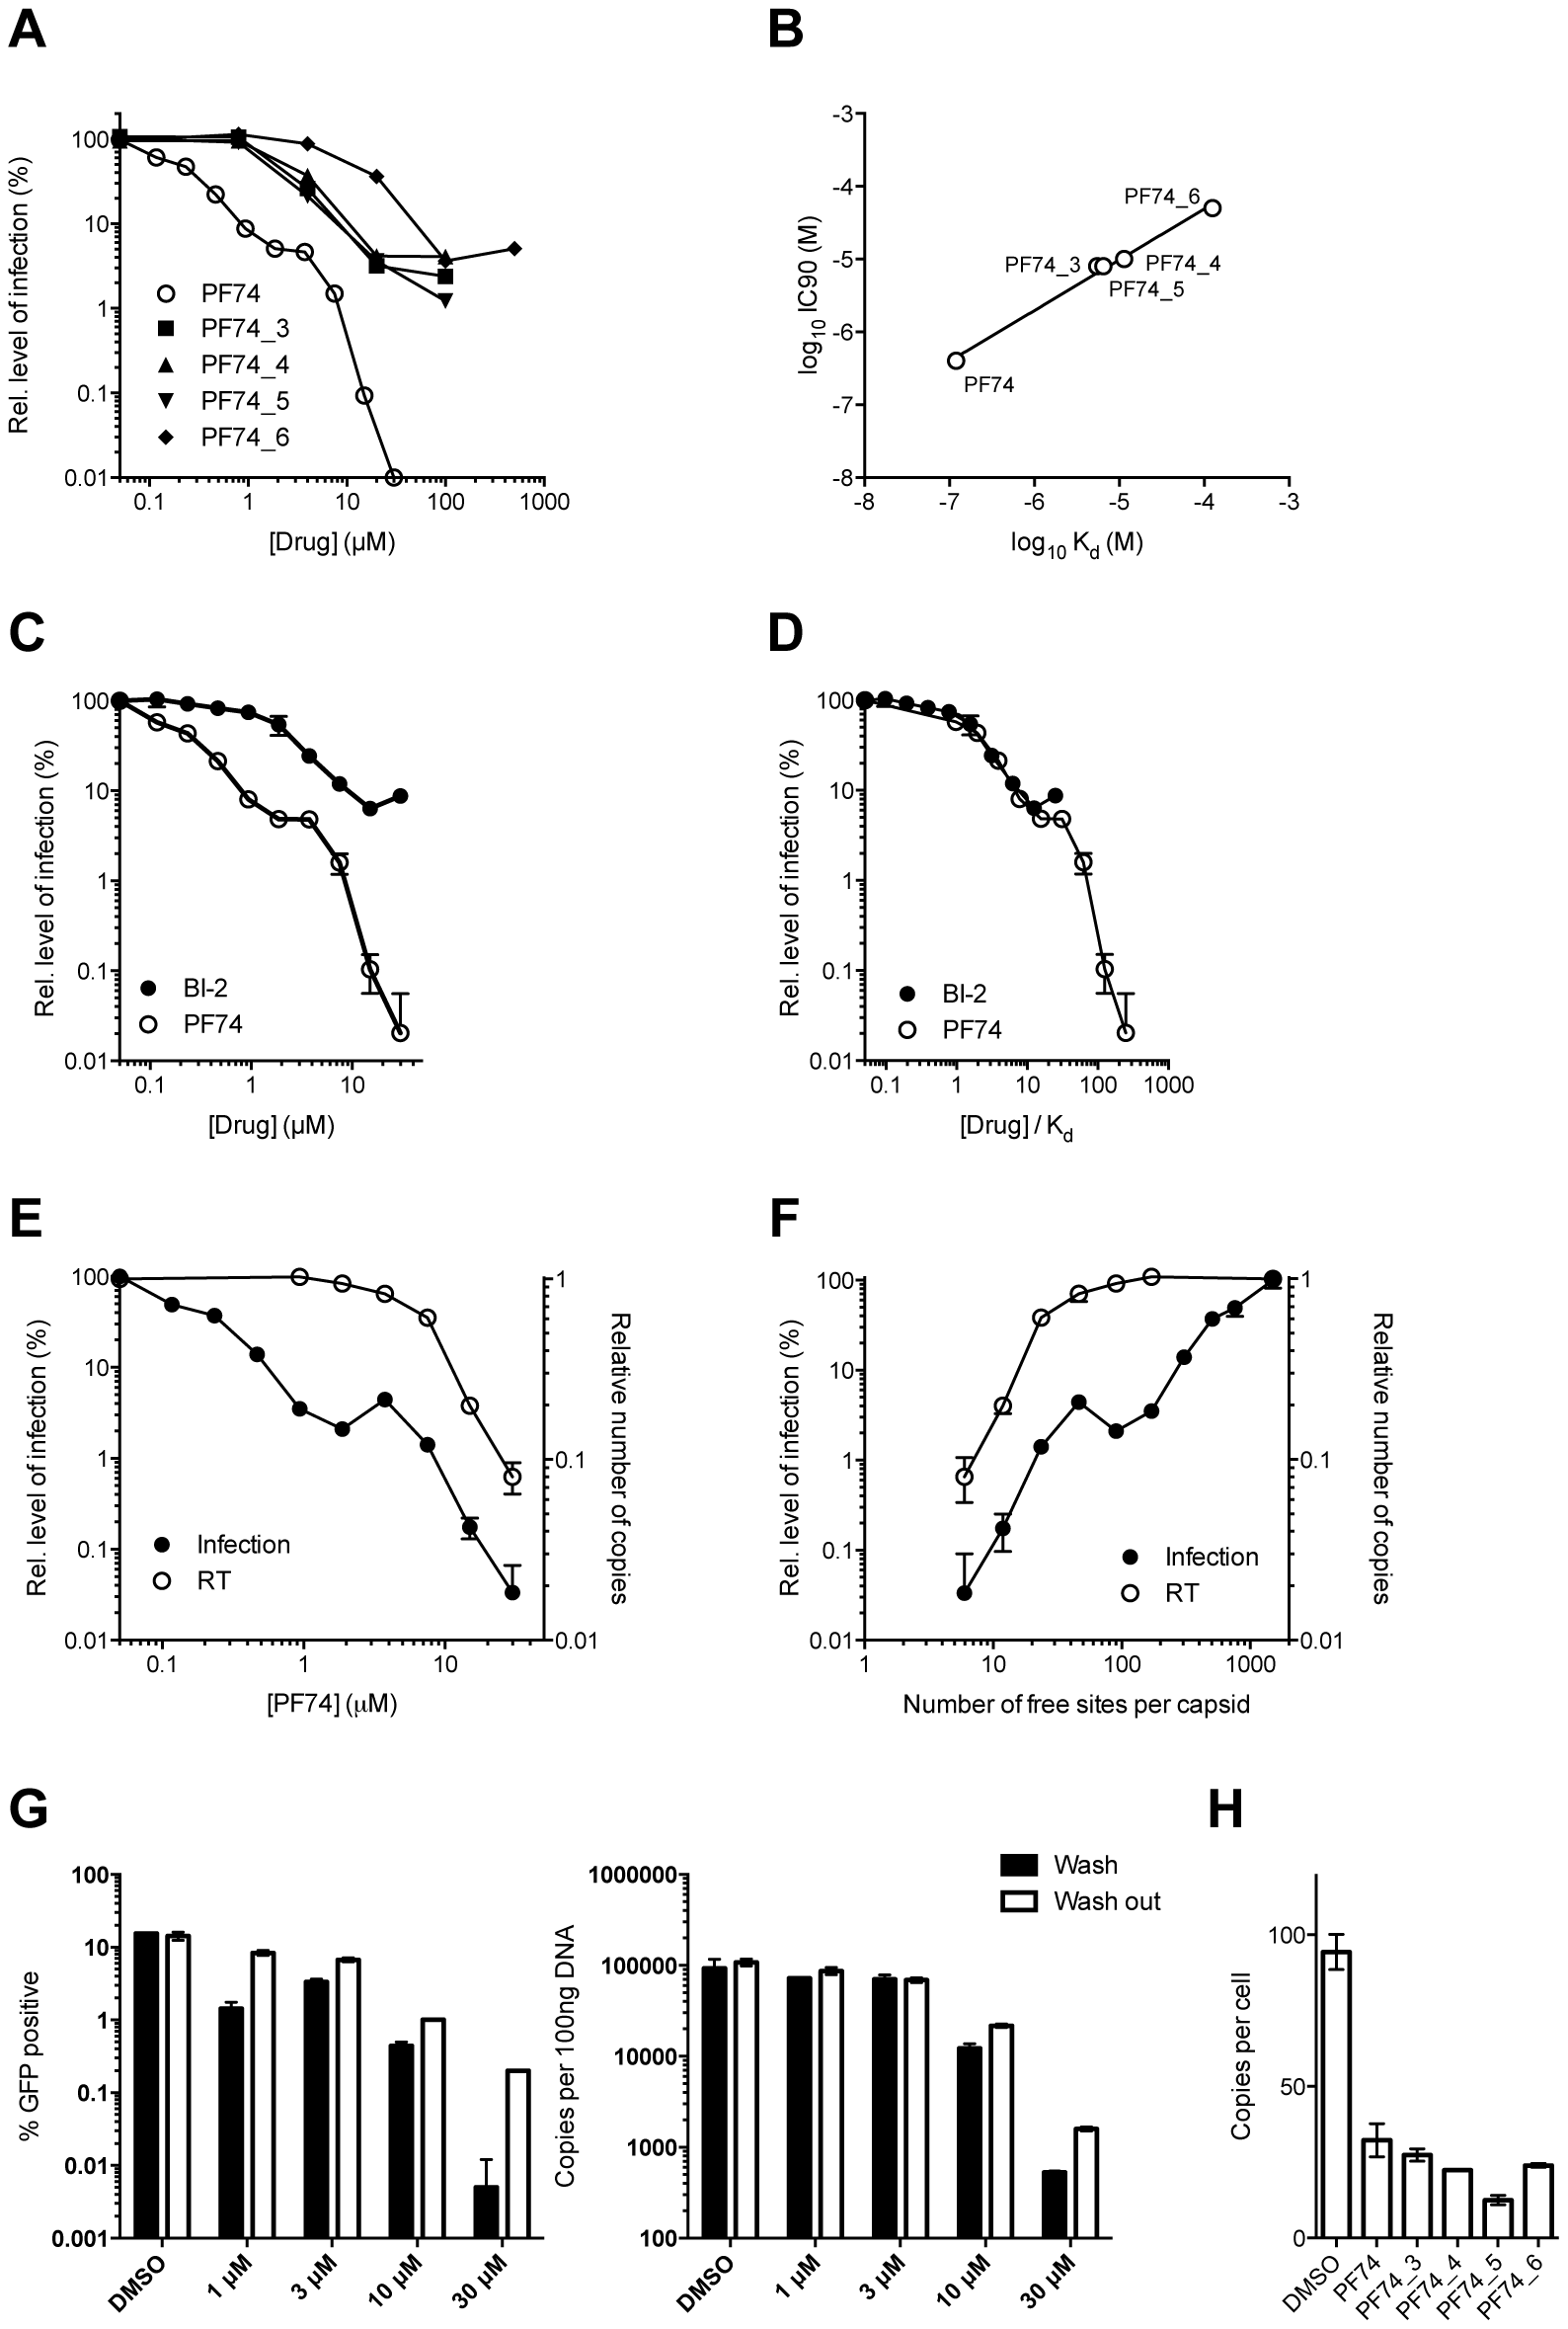 Inhibition of HIV-1 infection by BI-2, PF74 and PF74 derivatives.